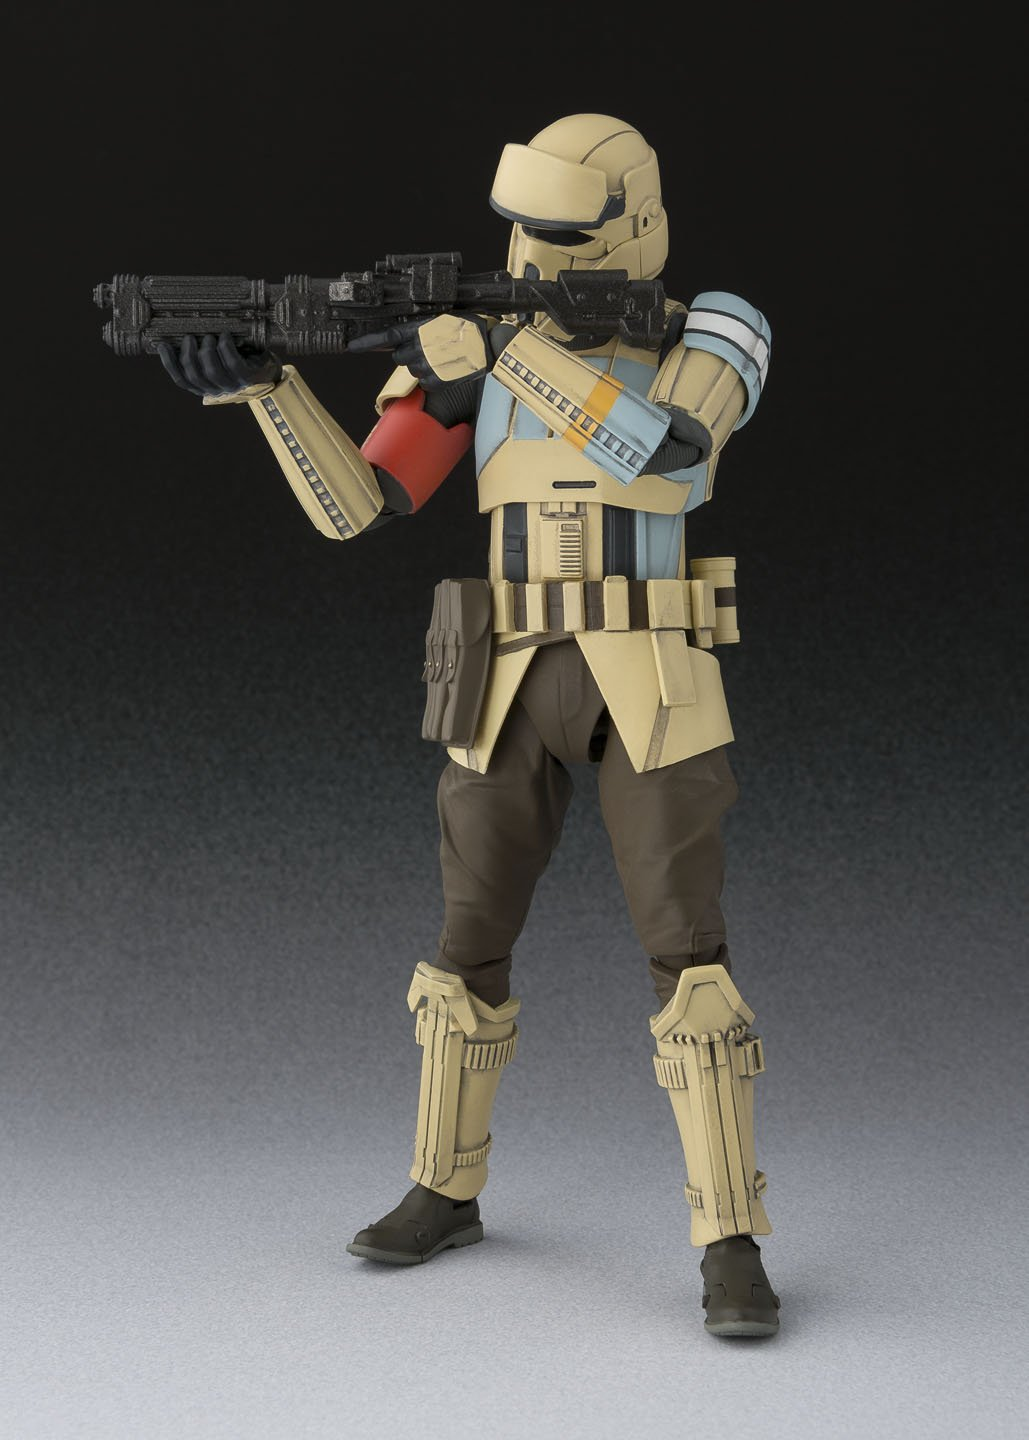 H Figuarts Star Wars Shore Trooper Approximately 150 mm ABS /& PVC painted movable figure S